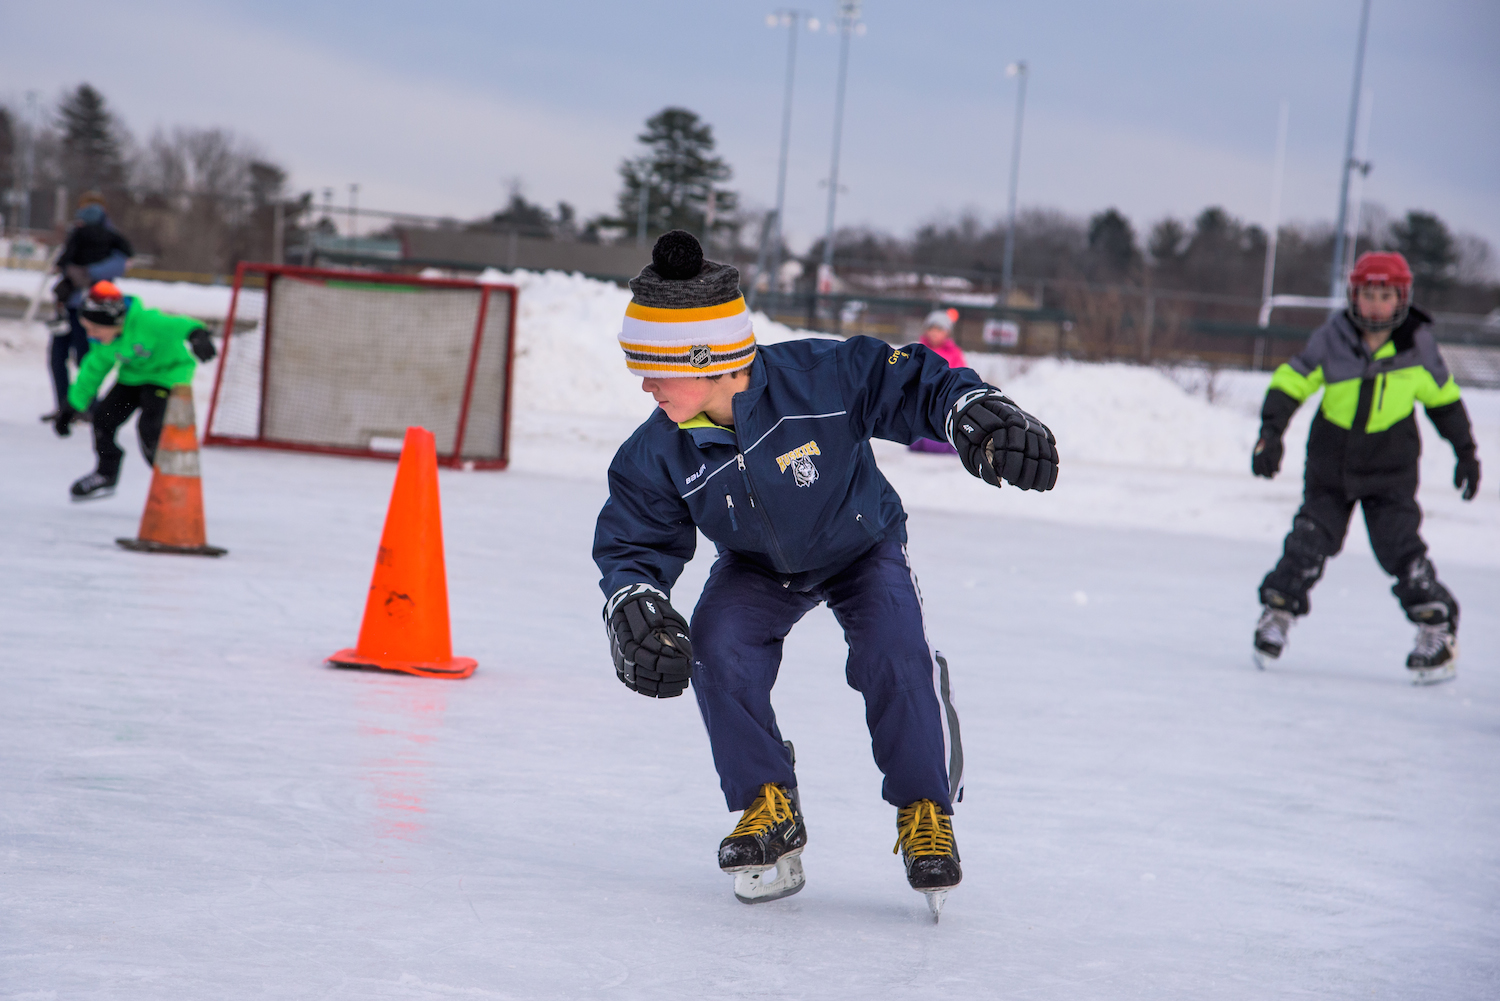 Wyatt Grondin, 9, of Scarborough competes in the Backwards Skating contest, Monday, February 15, 2016 during Scarborough WinterFest 2016 at the town's municipal ice rink.